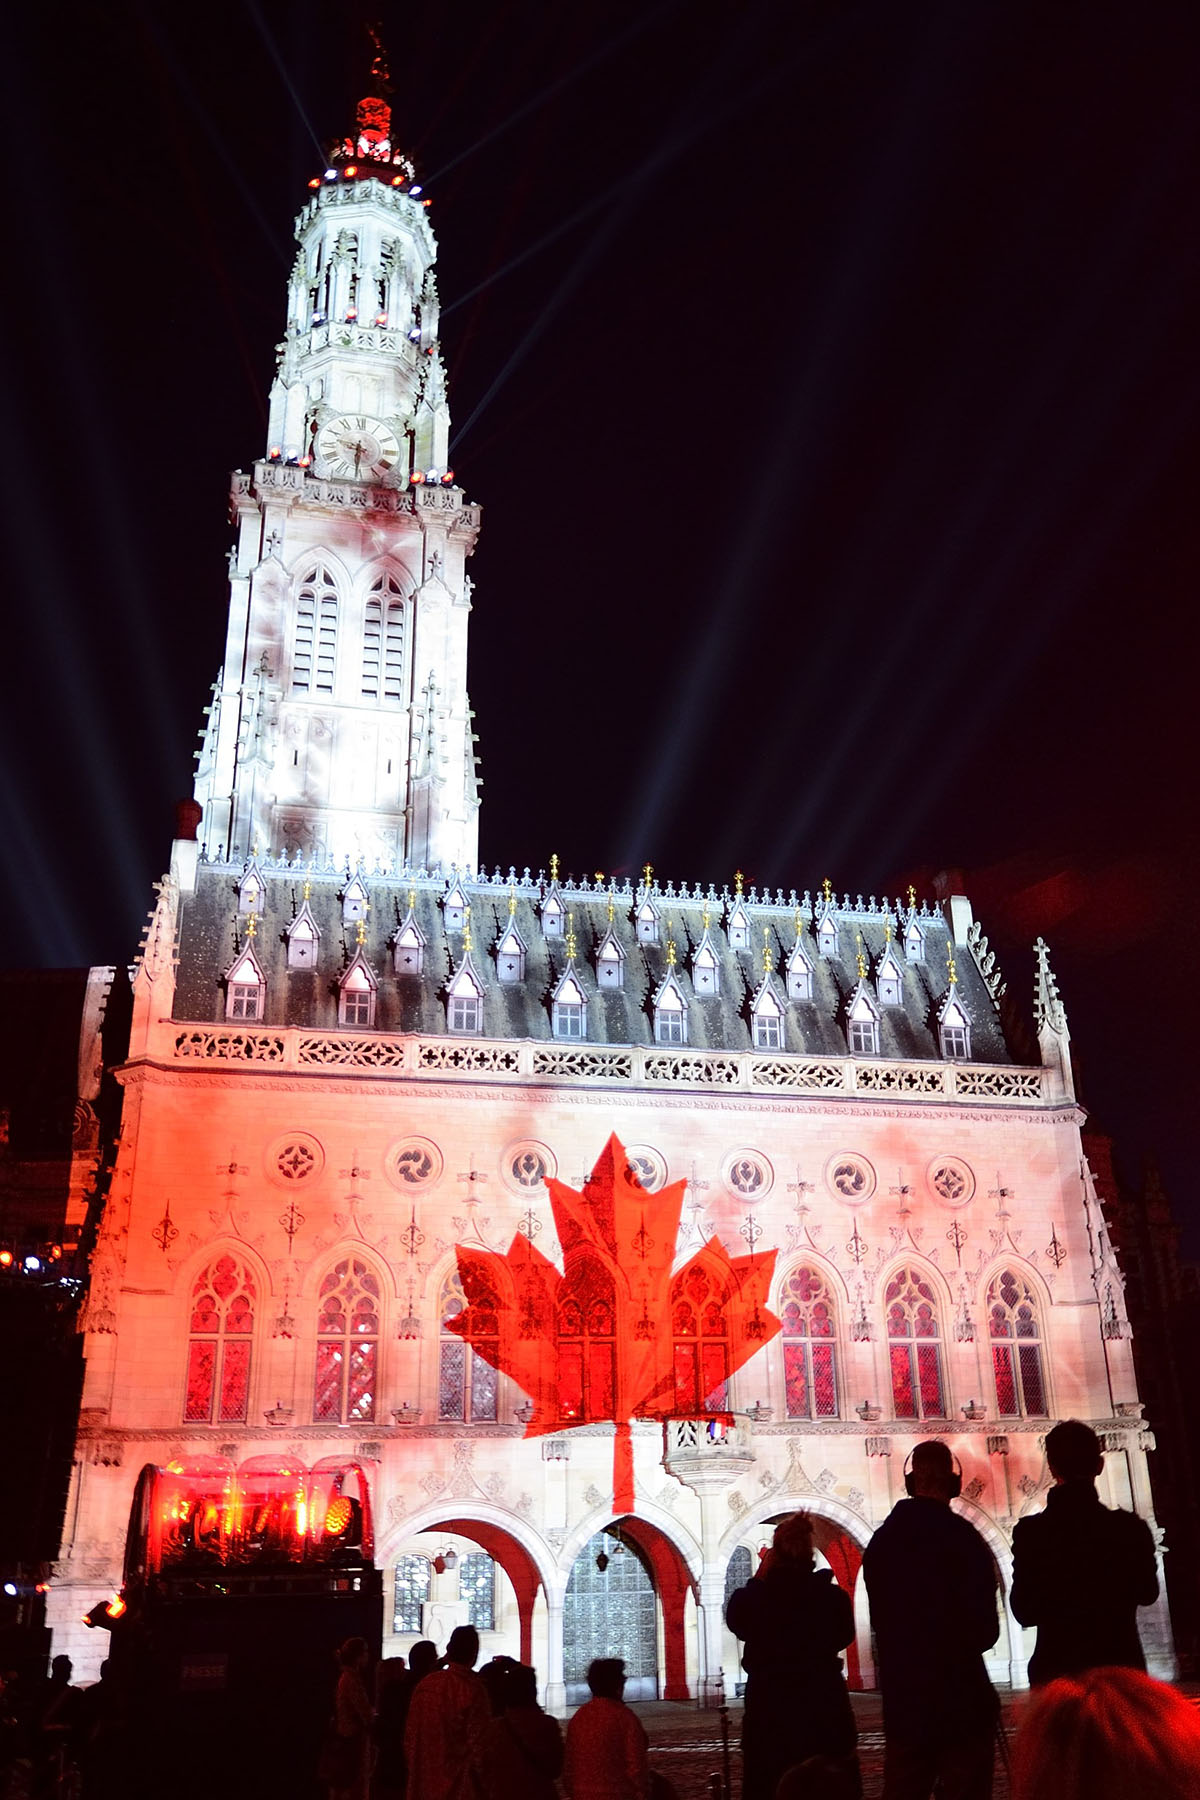 Honouring the sacrifices and success of all Canadian men and women who served or are currently serving our country, the show also conveyed the spirit of friendship and shared history between Canada and France, and reflected Canada's cultural diversity.